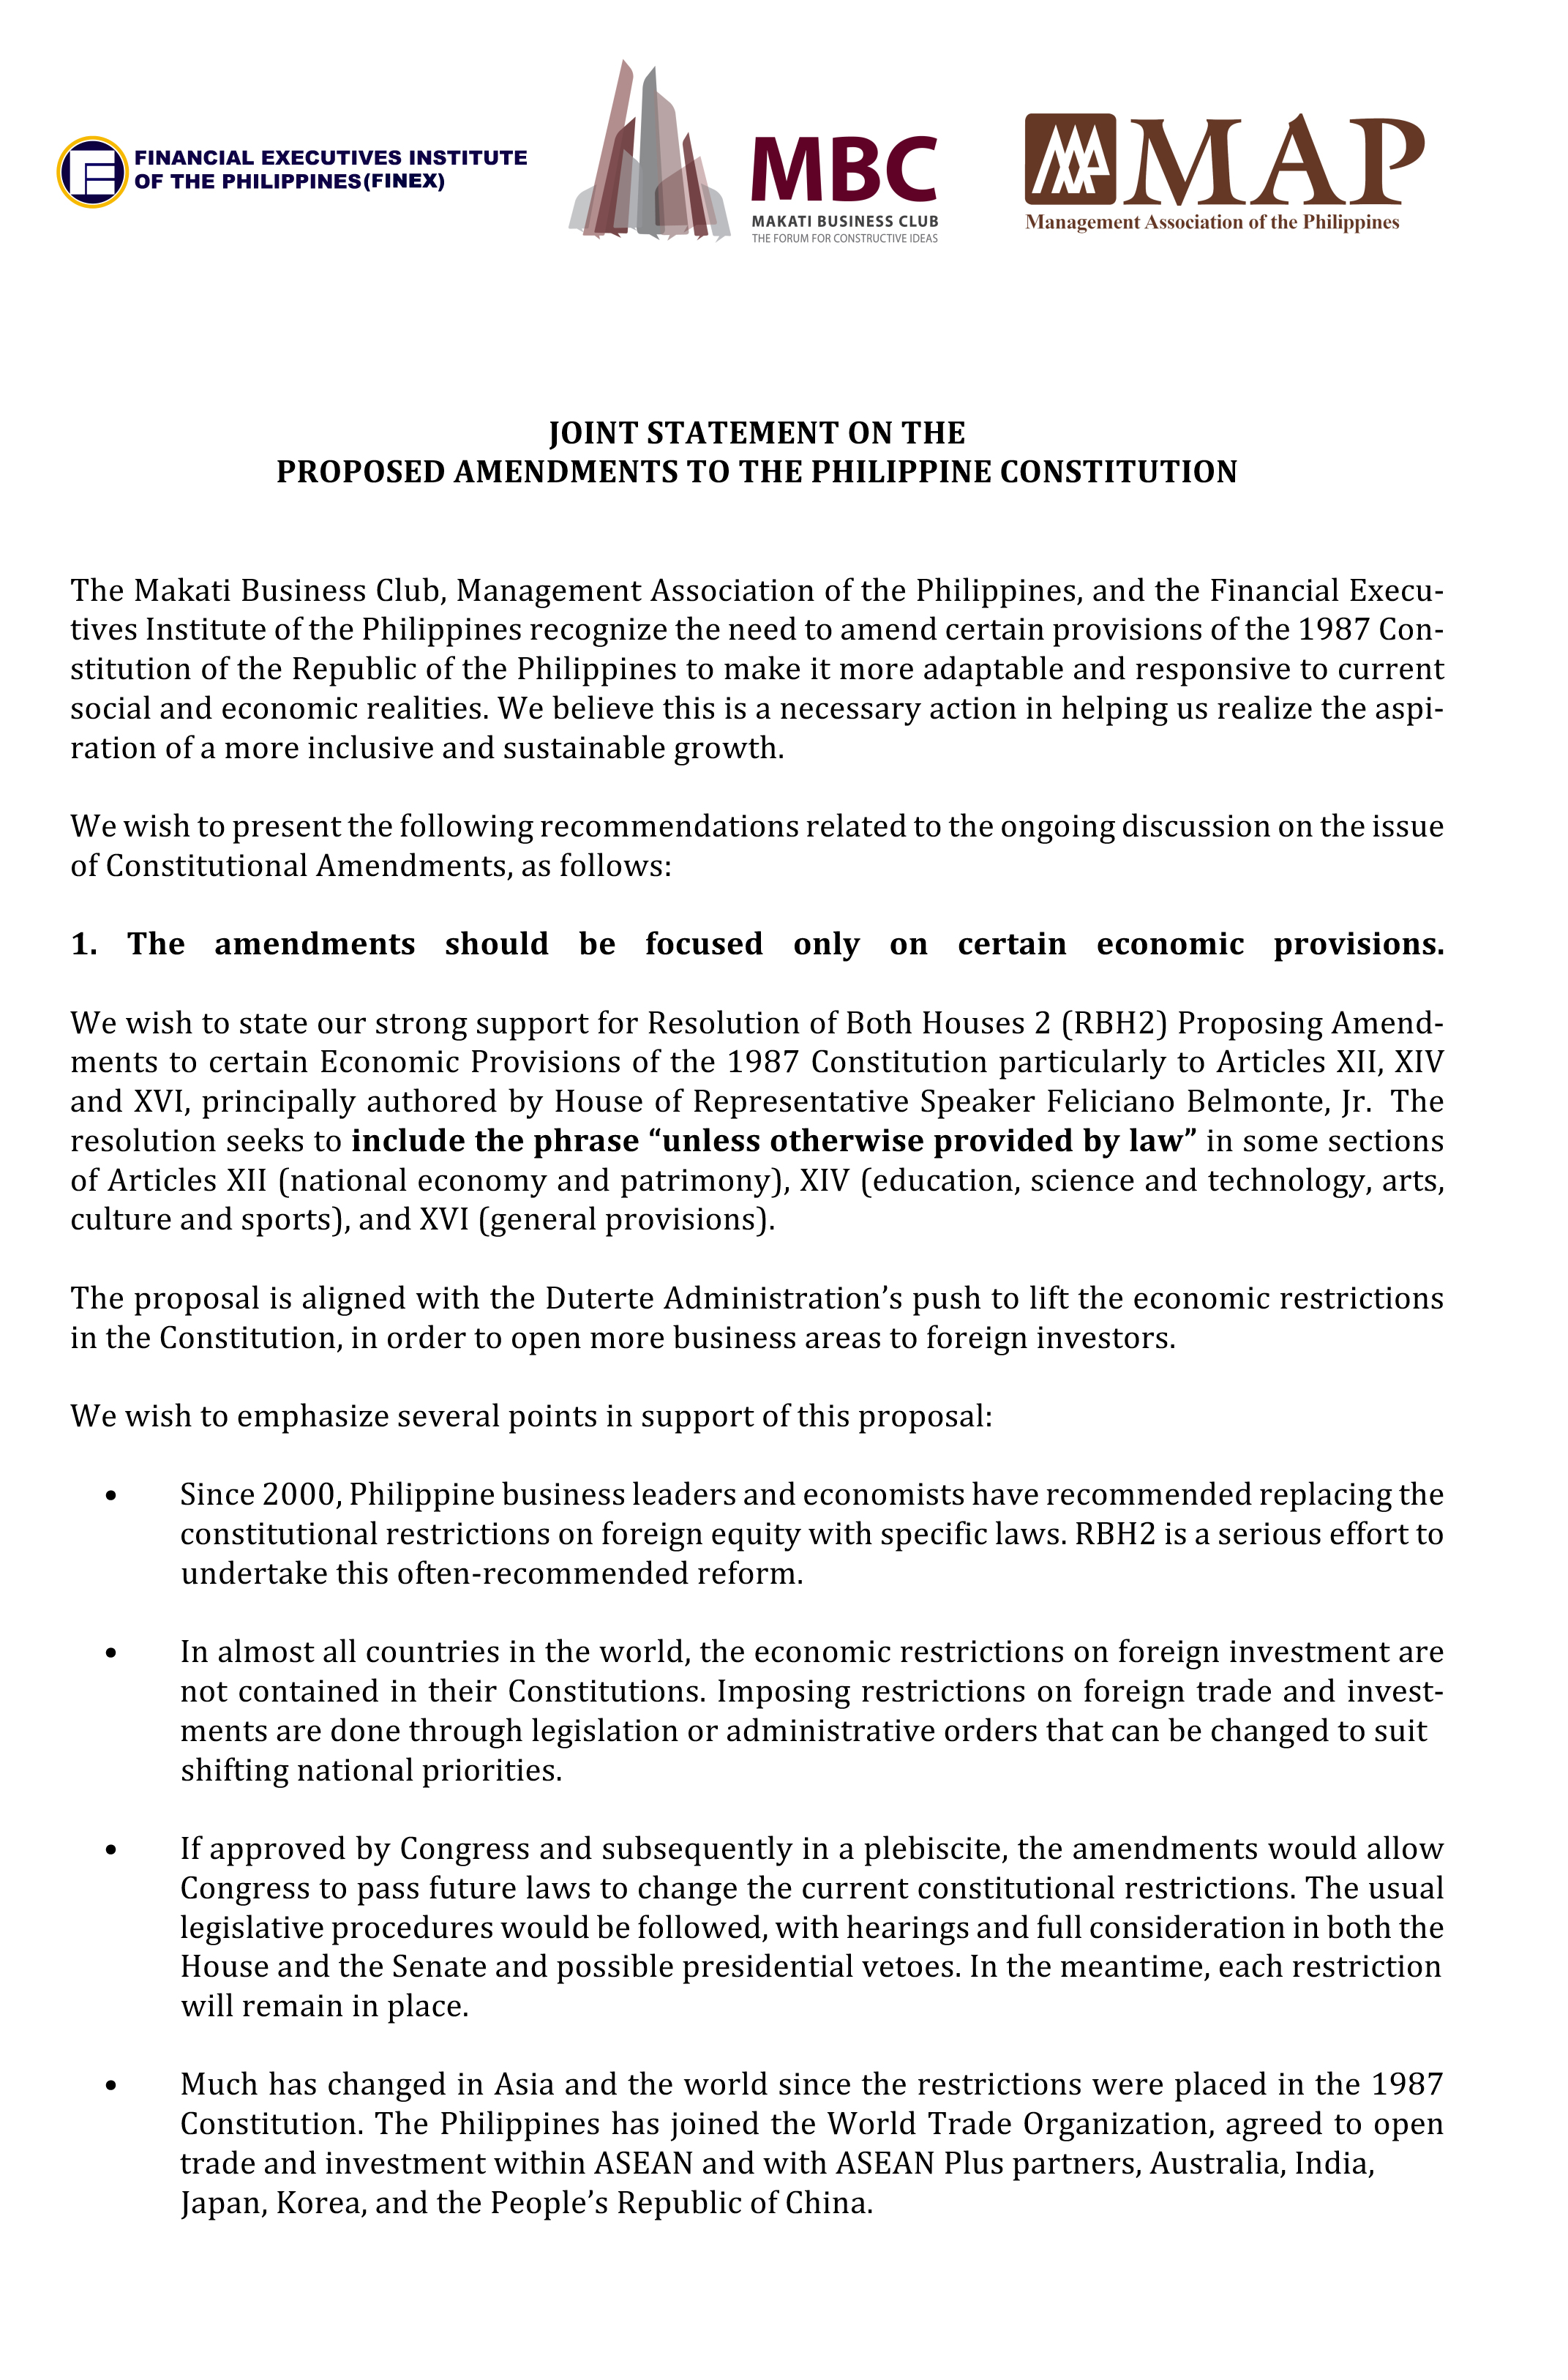 JOINT STATEMENT ON THE PROPOSED AMENDMENTS TO THE PHILIPPINE CONSTITUTION